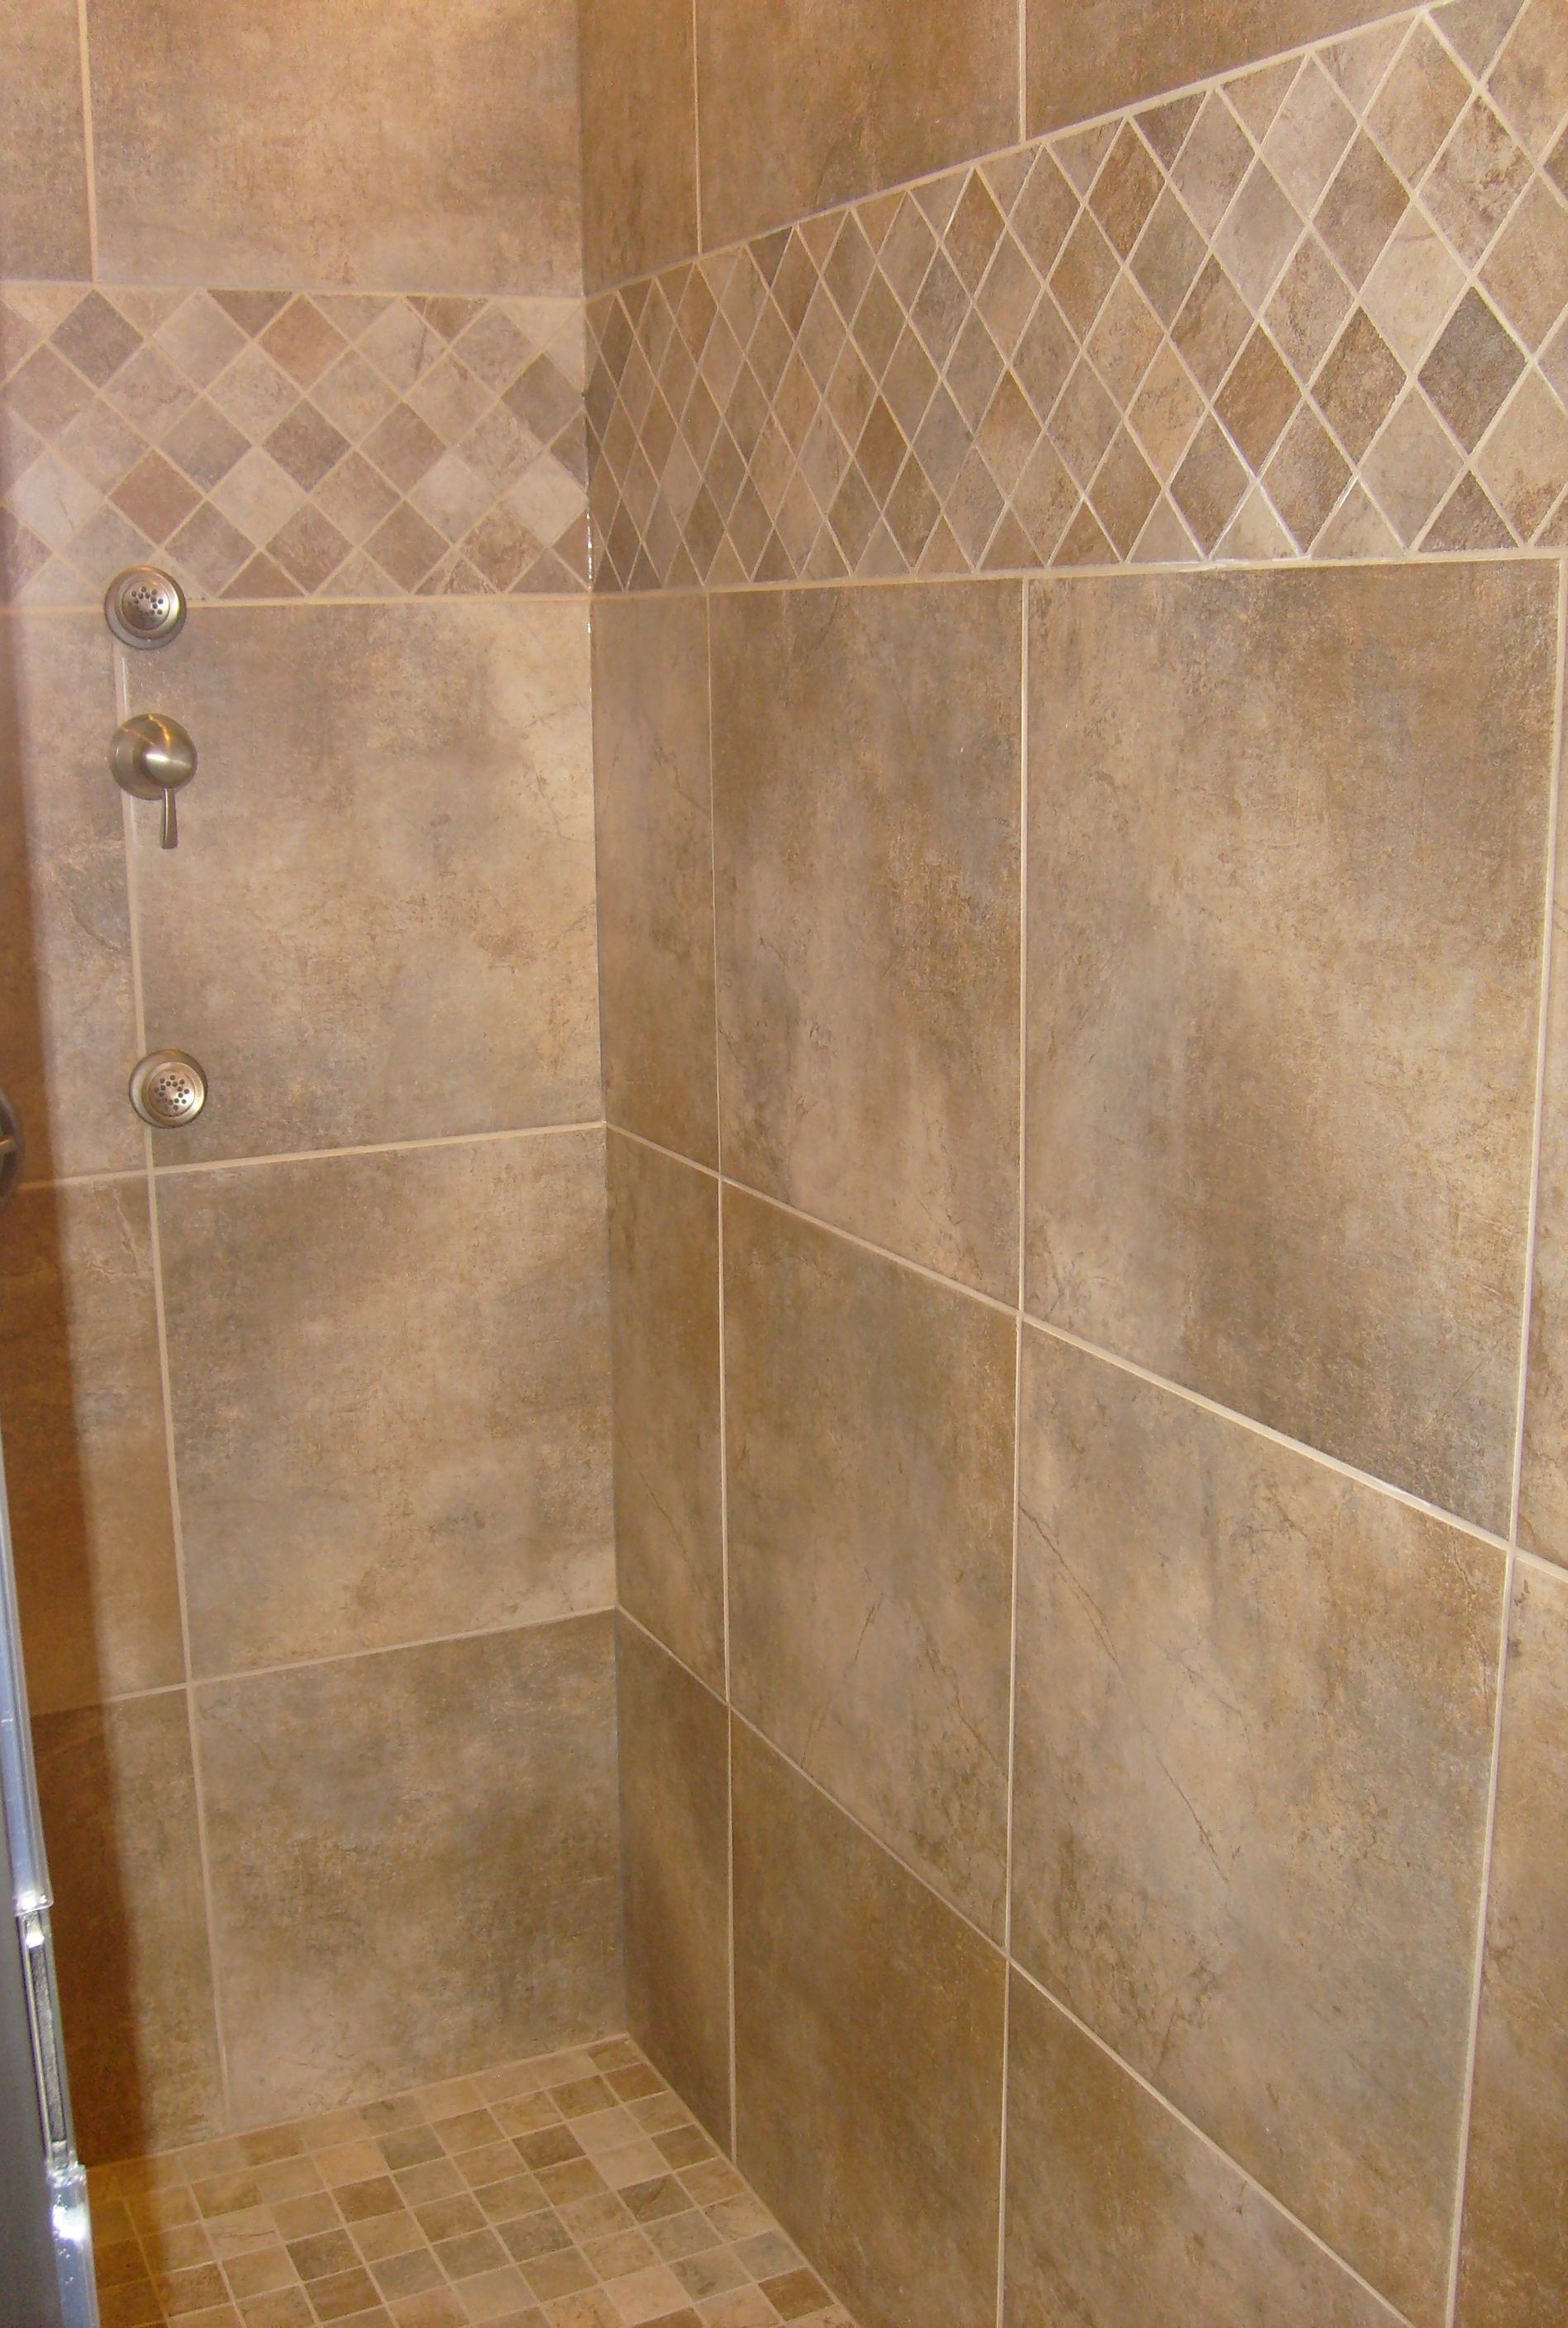 21st Century Tile Home Patterned Bathroom Tiles Bathroom Tile